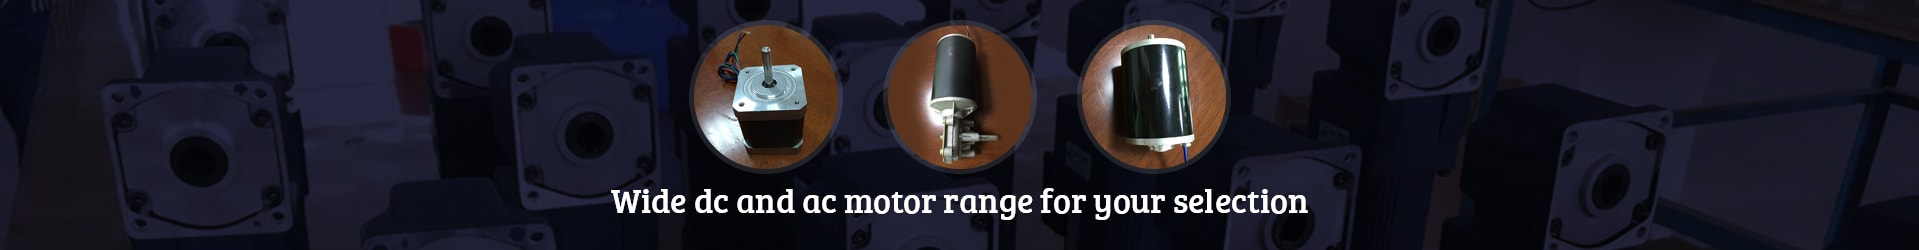 Kinds Of Electric Motors For Sale - Power Jack Motion